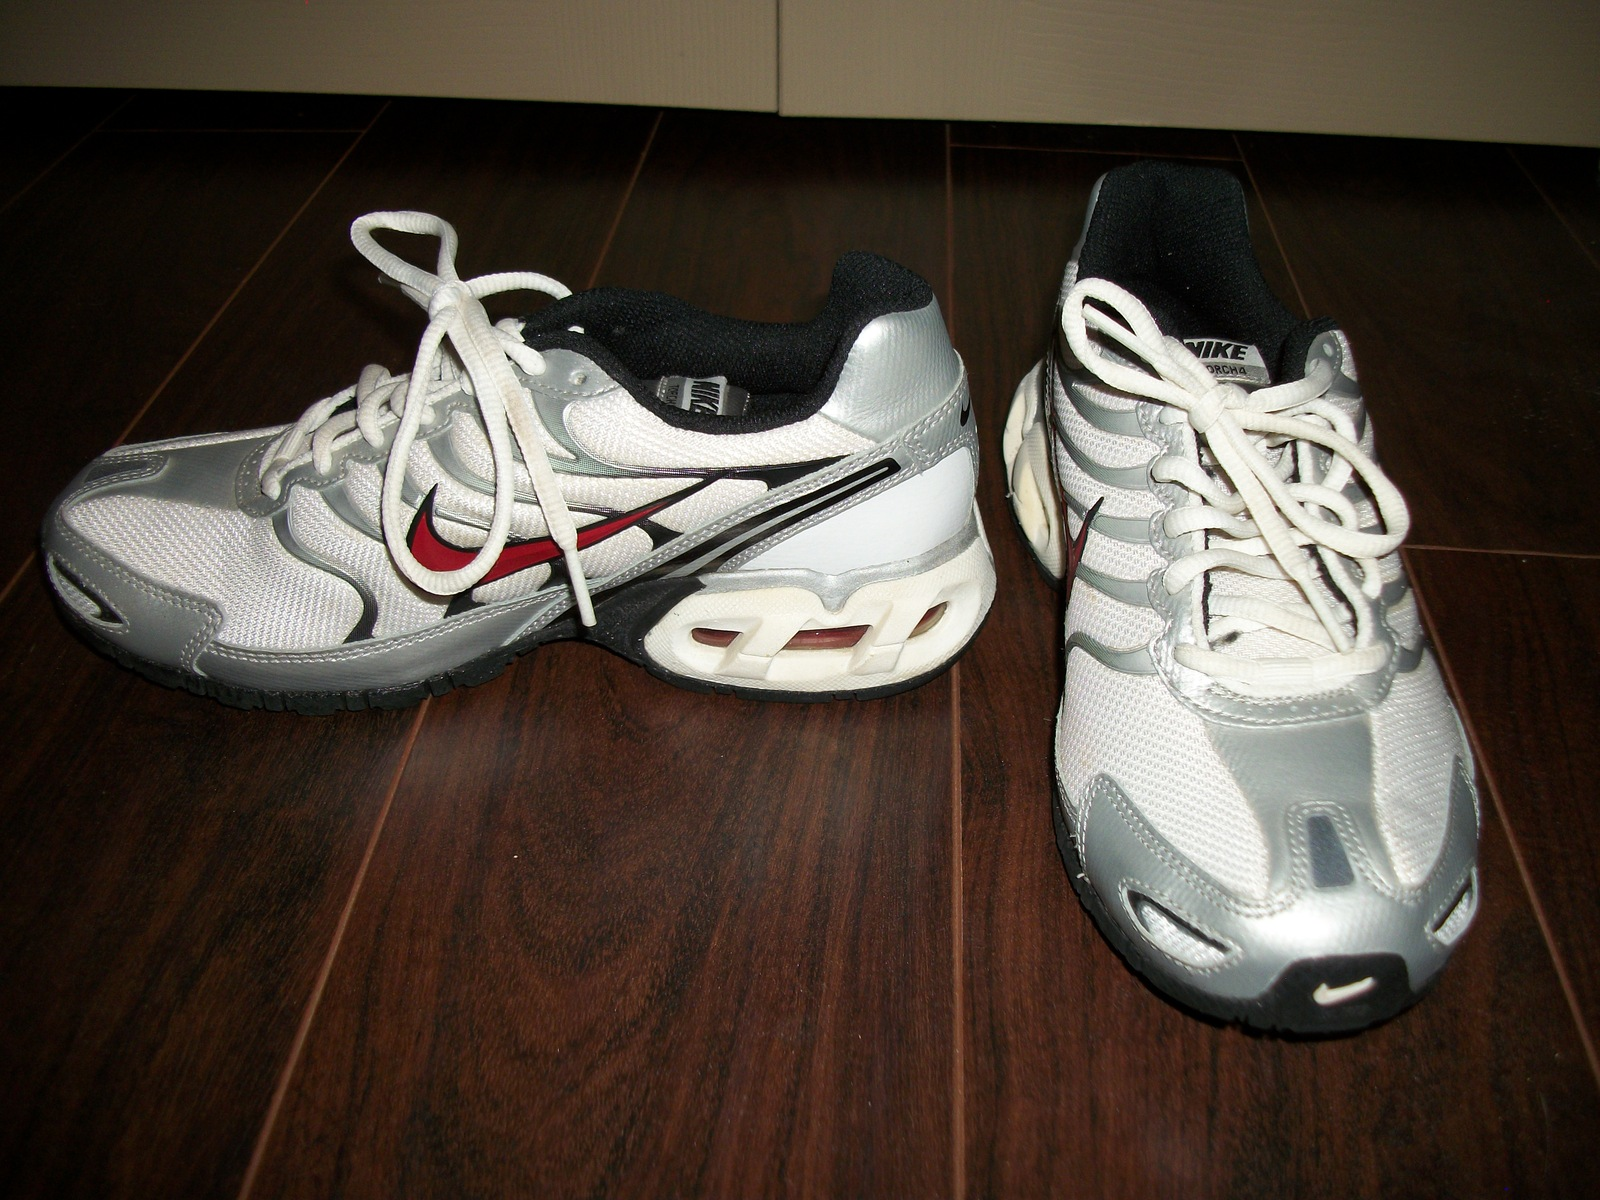 Preowned Youth Nike Torch 4 Athletic Shoes Size 5.5 Gray And White